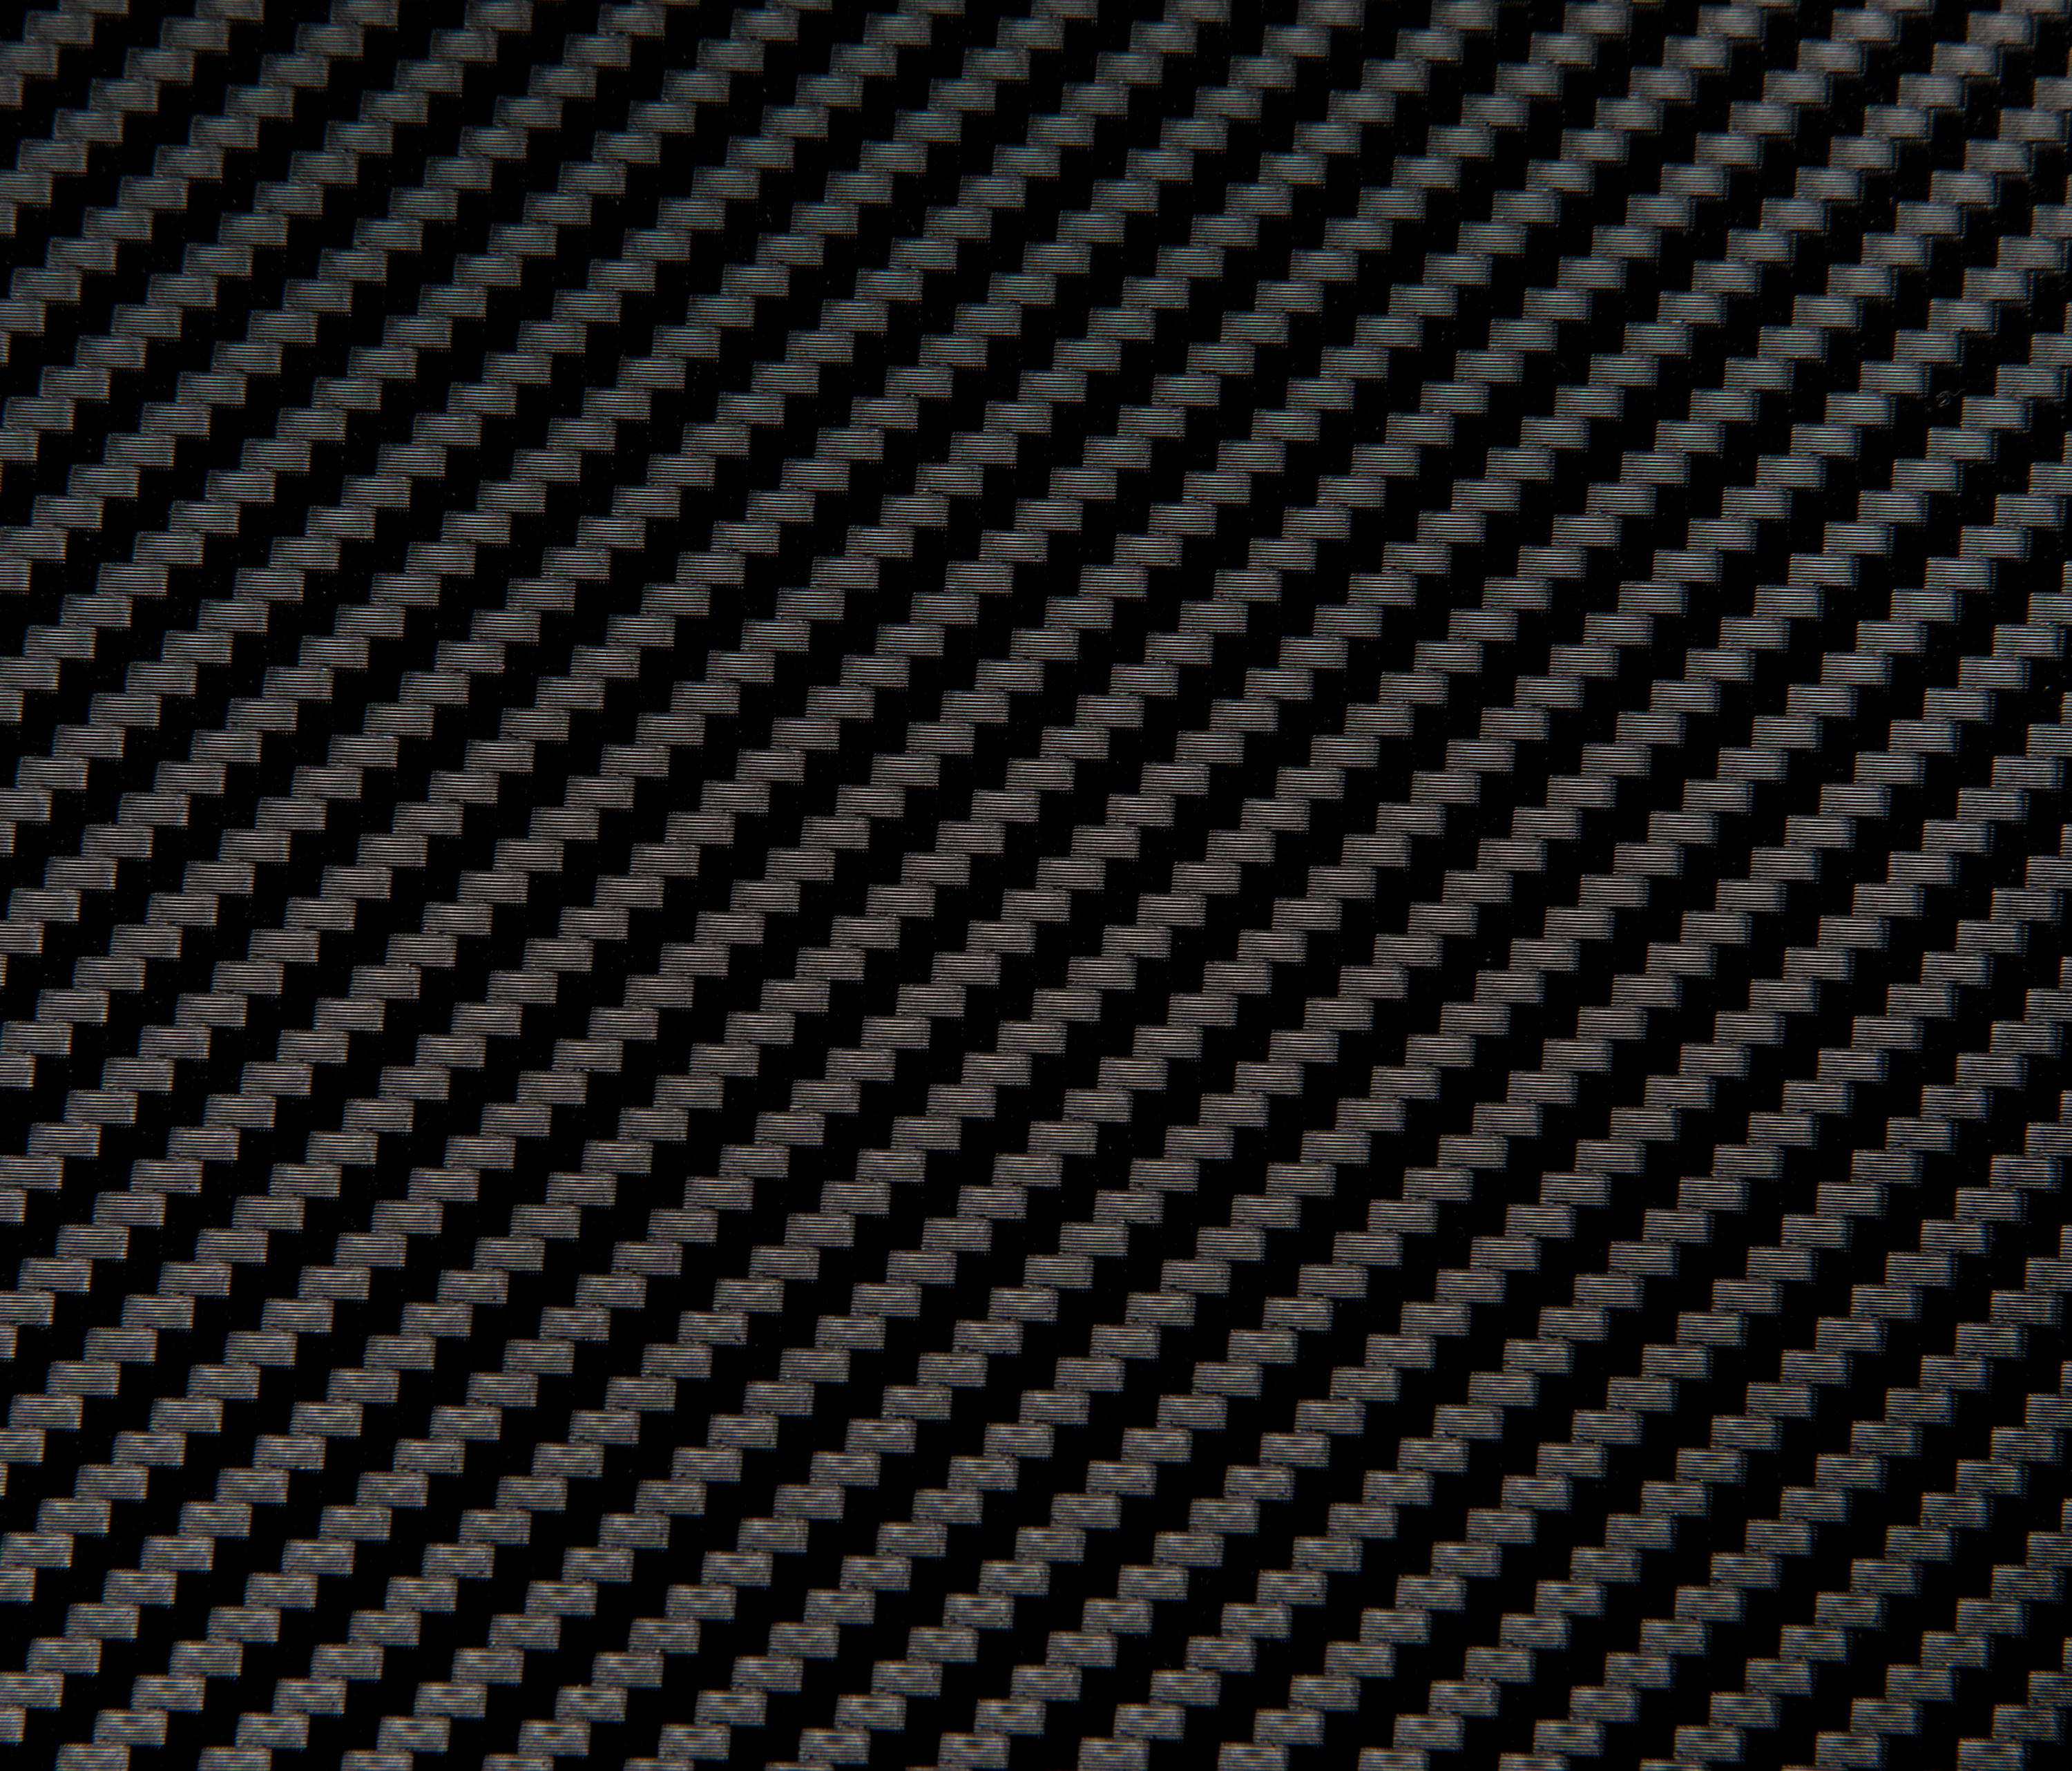 3m di noc architectural finish ca 1170 carbon films from 3m